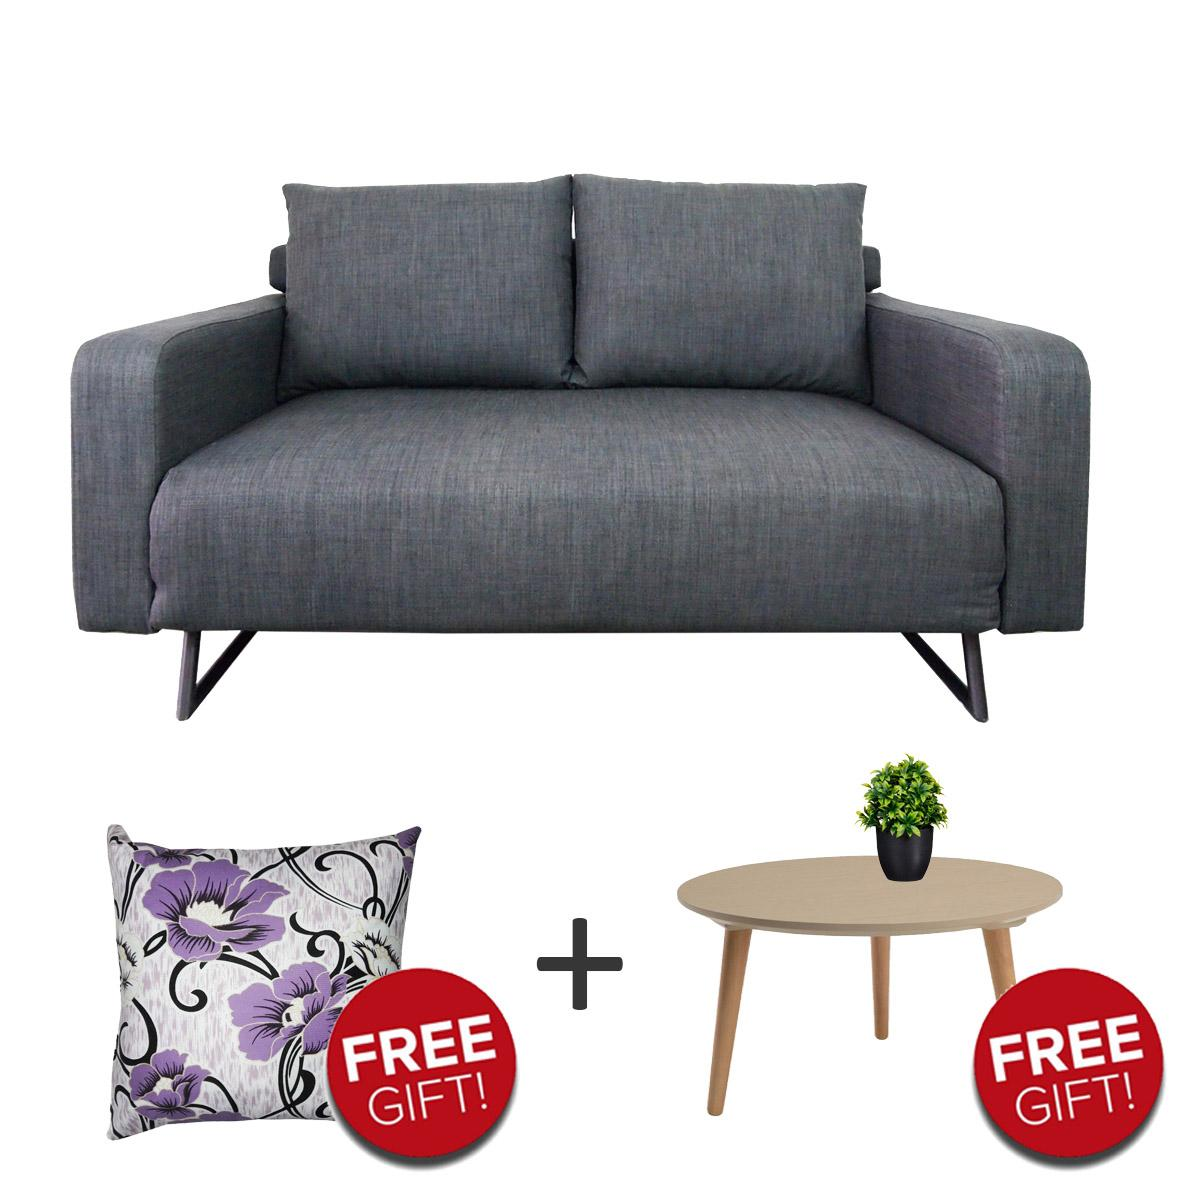 Fabric 2 Seater Sofabed + Free Coffee Table + Free Hug Cushion + Free Delivery